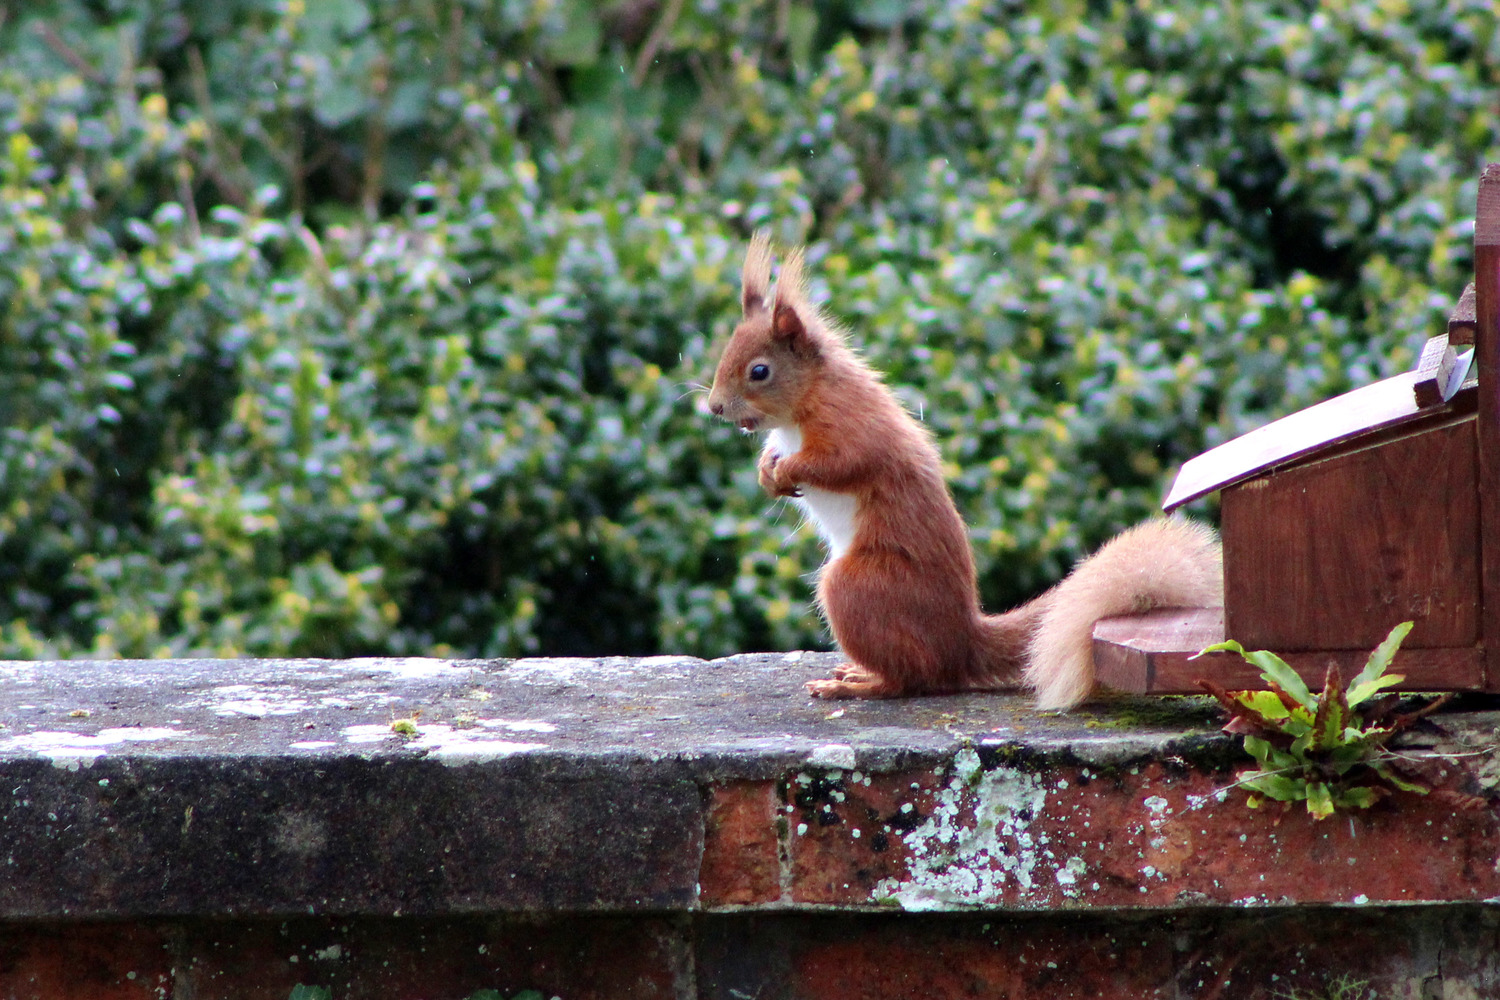 We often see a red squirrel or two in the garden. Bring your camera!